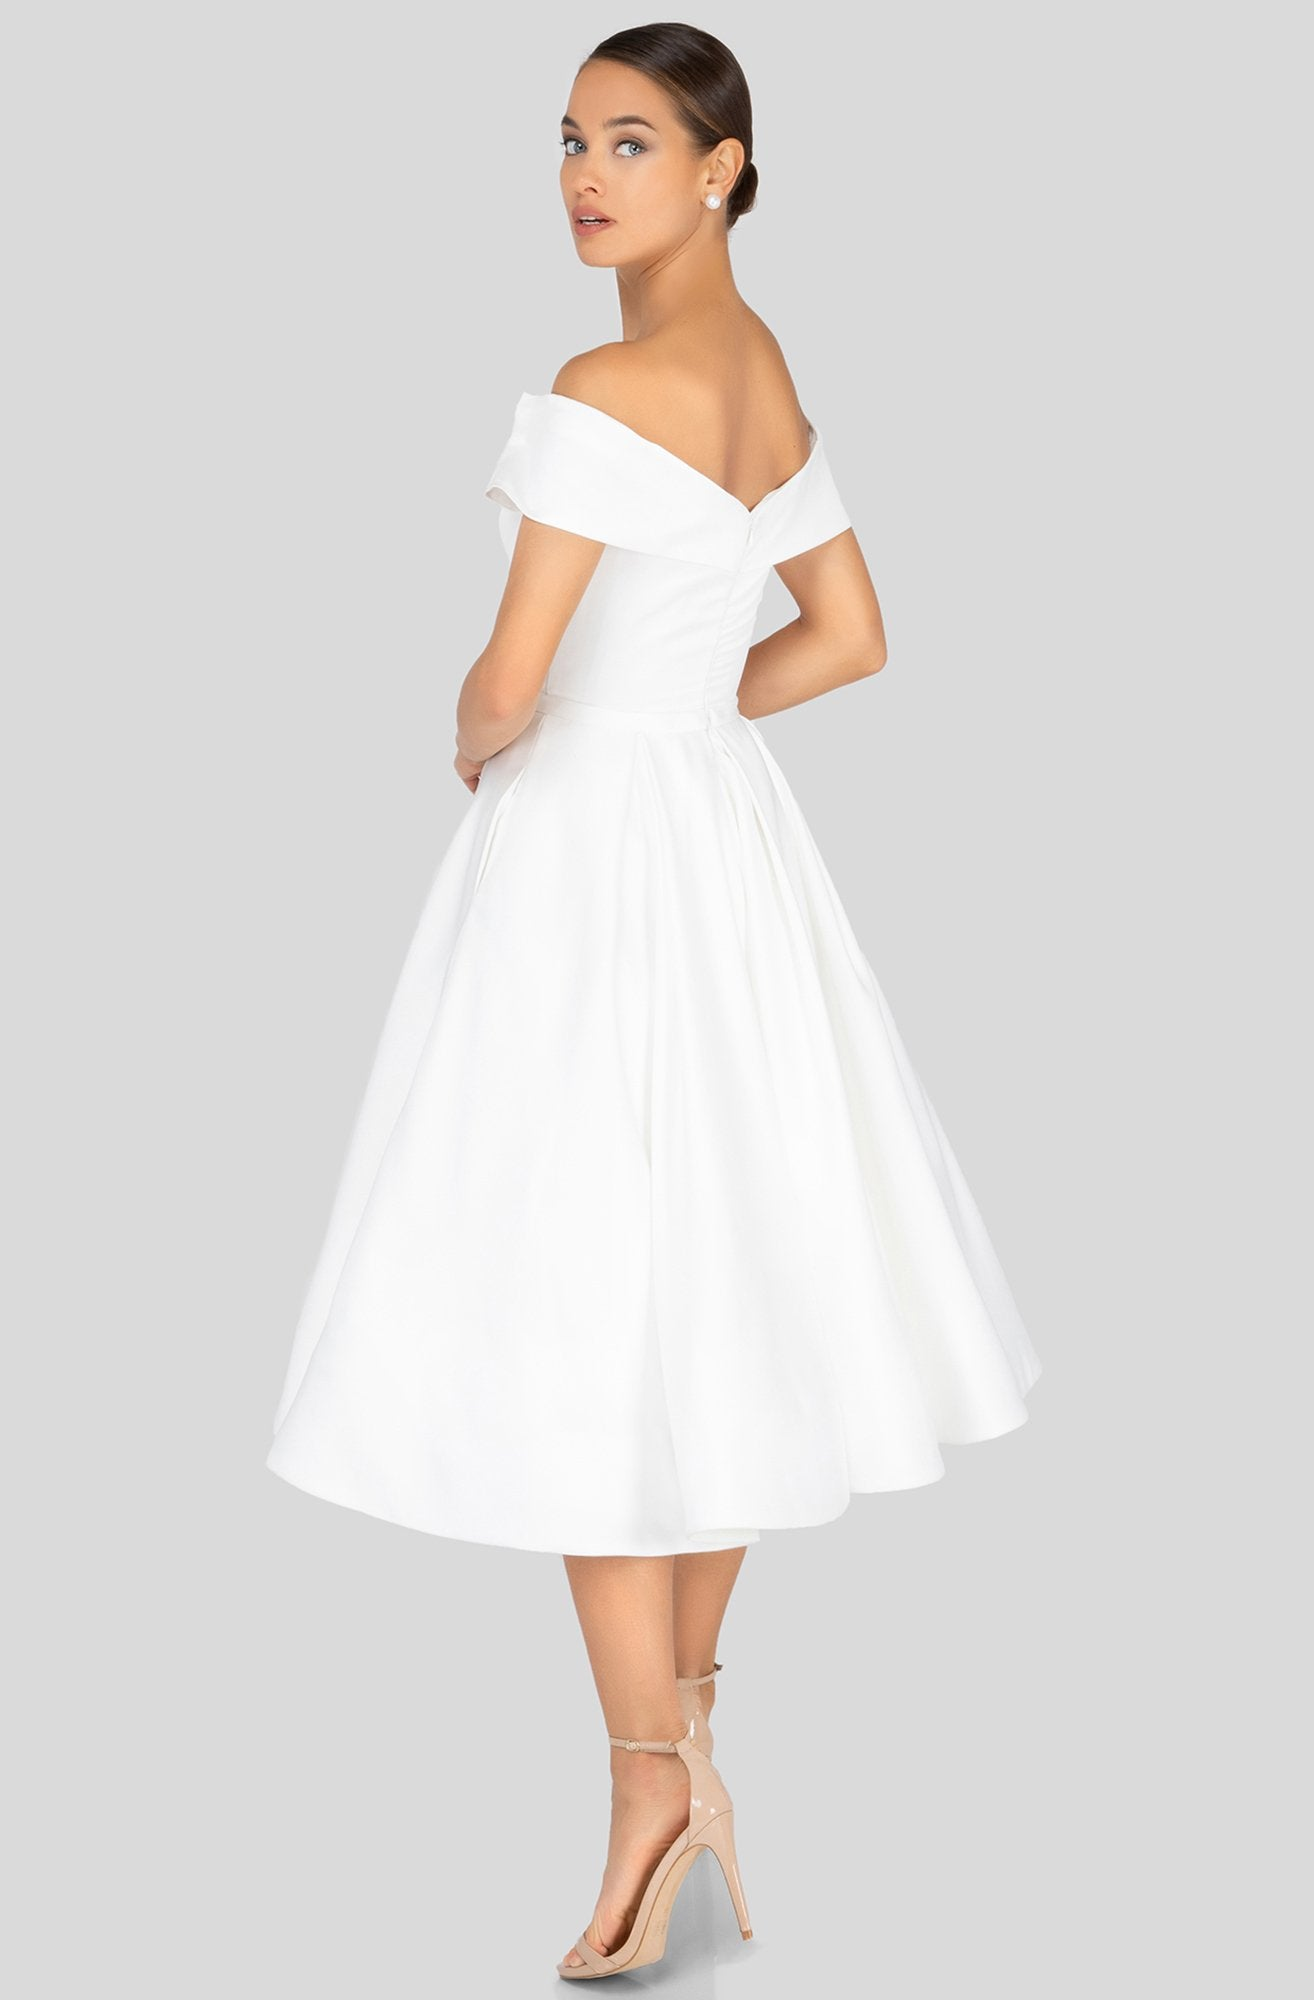 Terani Couture - 1912C9656 Off-Shoulder Tea Length A-line Dress In White